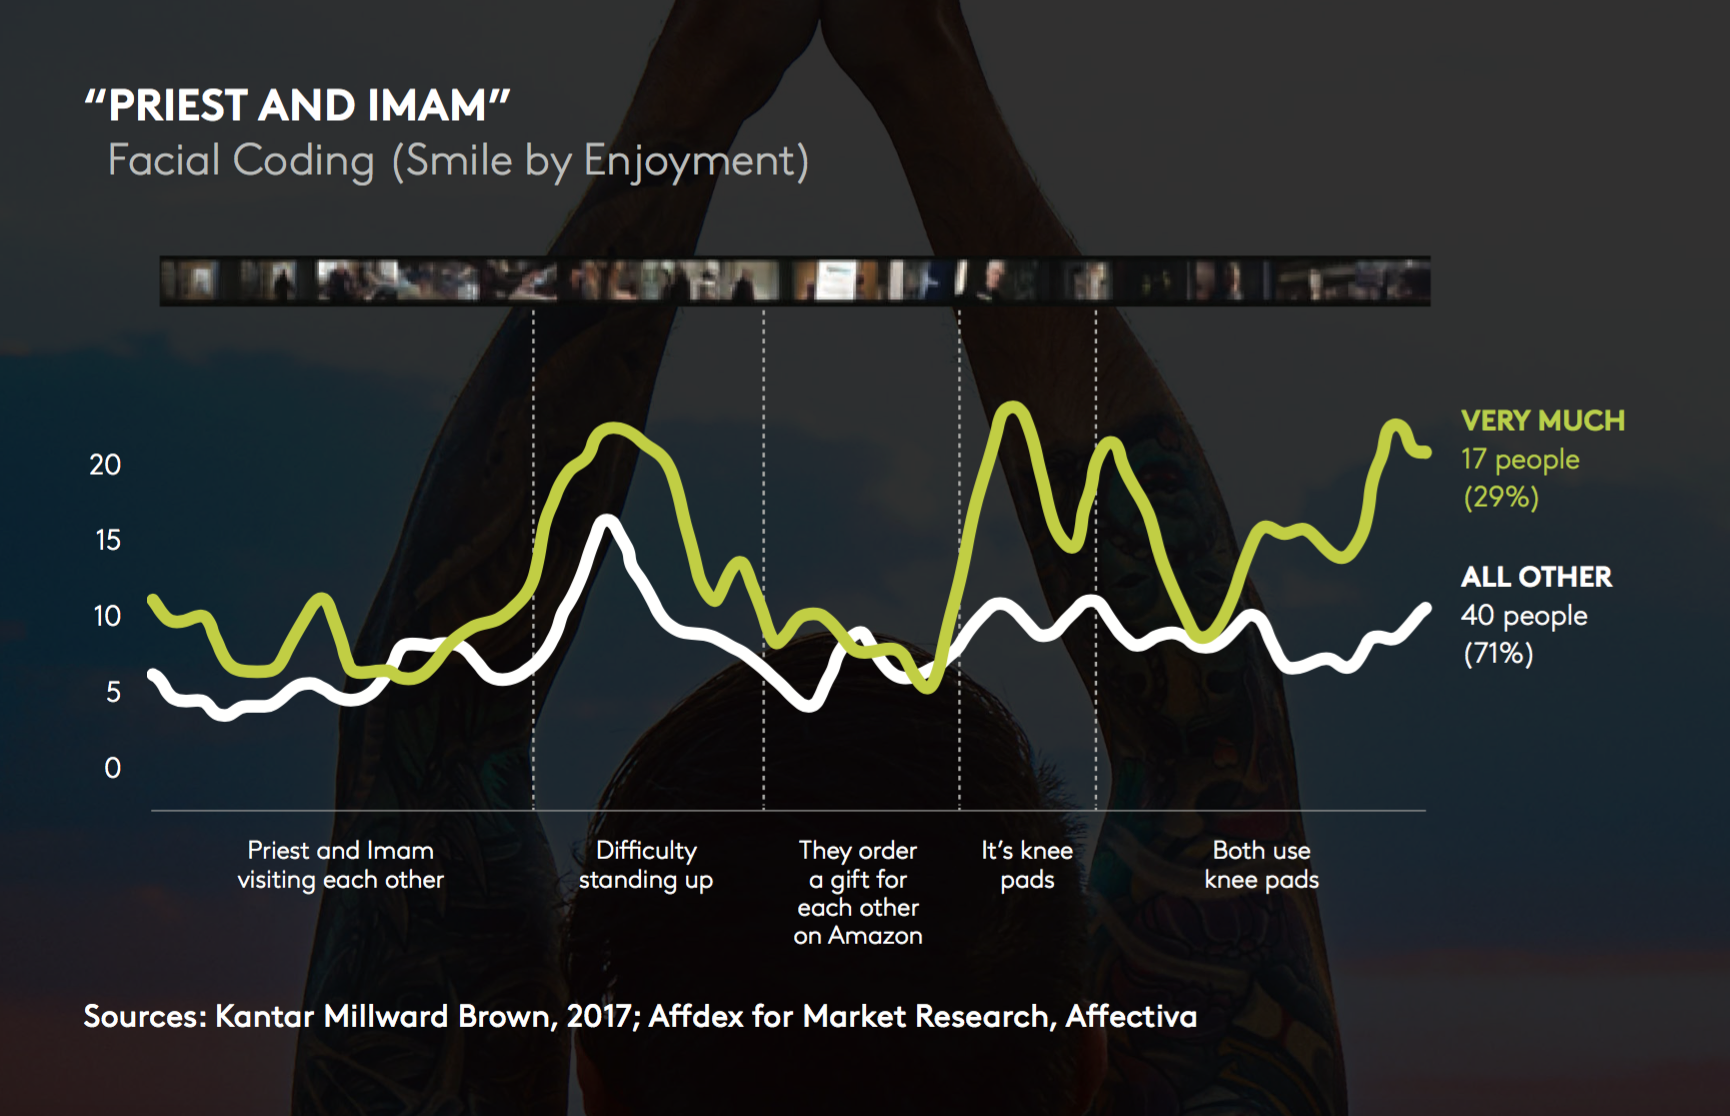 New Kantar Millward Brown Advertising Report: Make a Lasting Impression